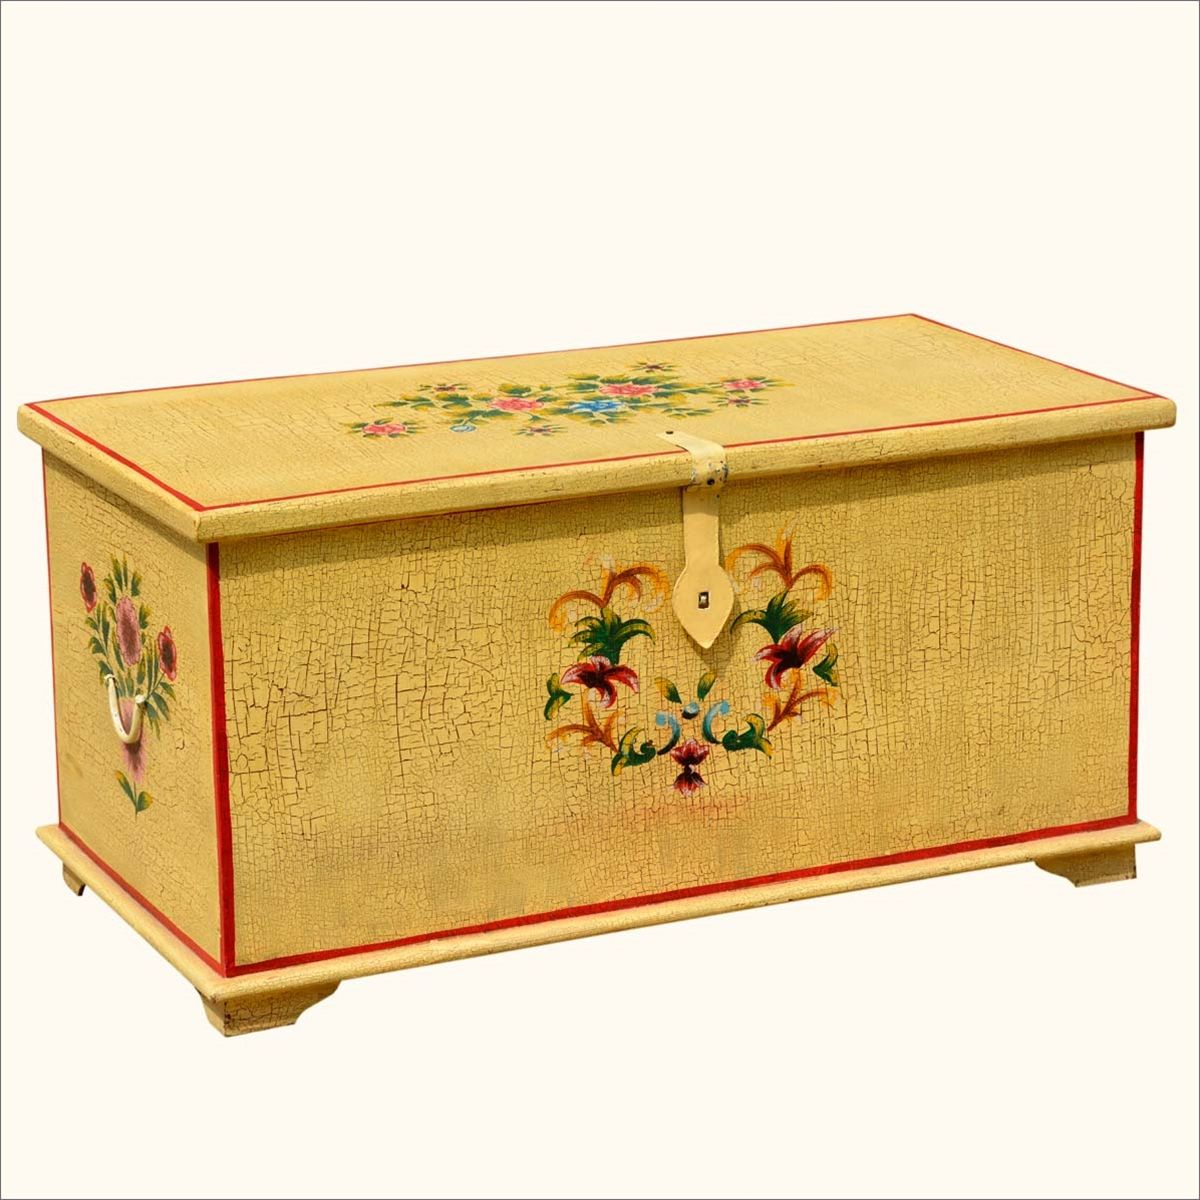 Captivating Whimsy Wood Distressed Hand Painted Storage Trunk  Http://www.sierralivingconcepts.com